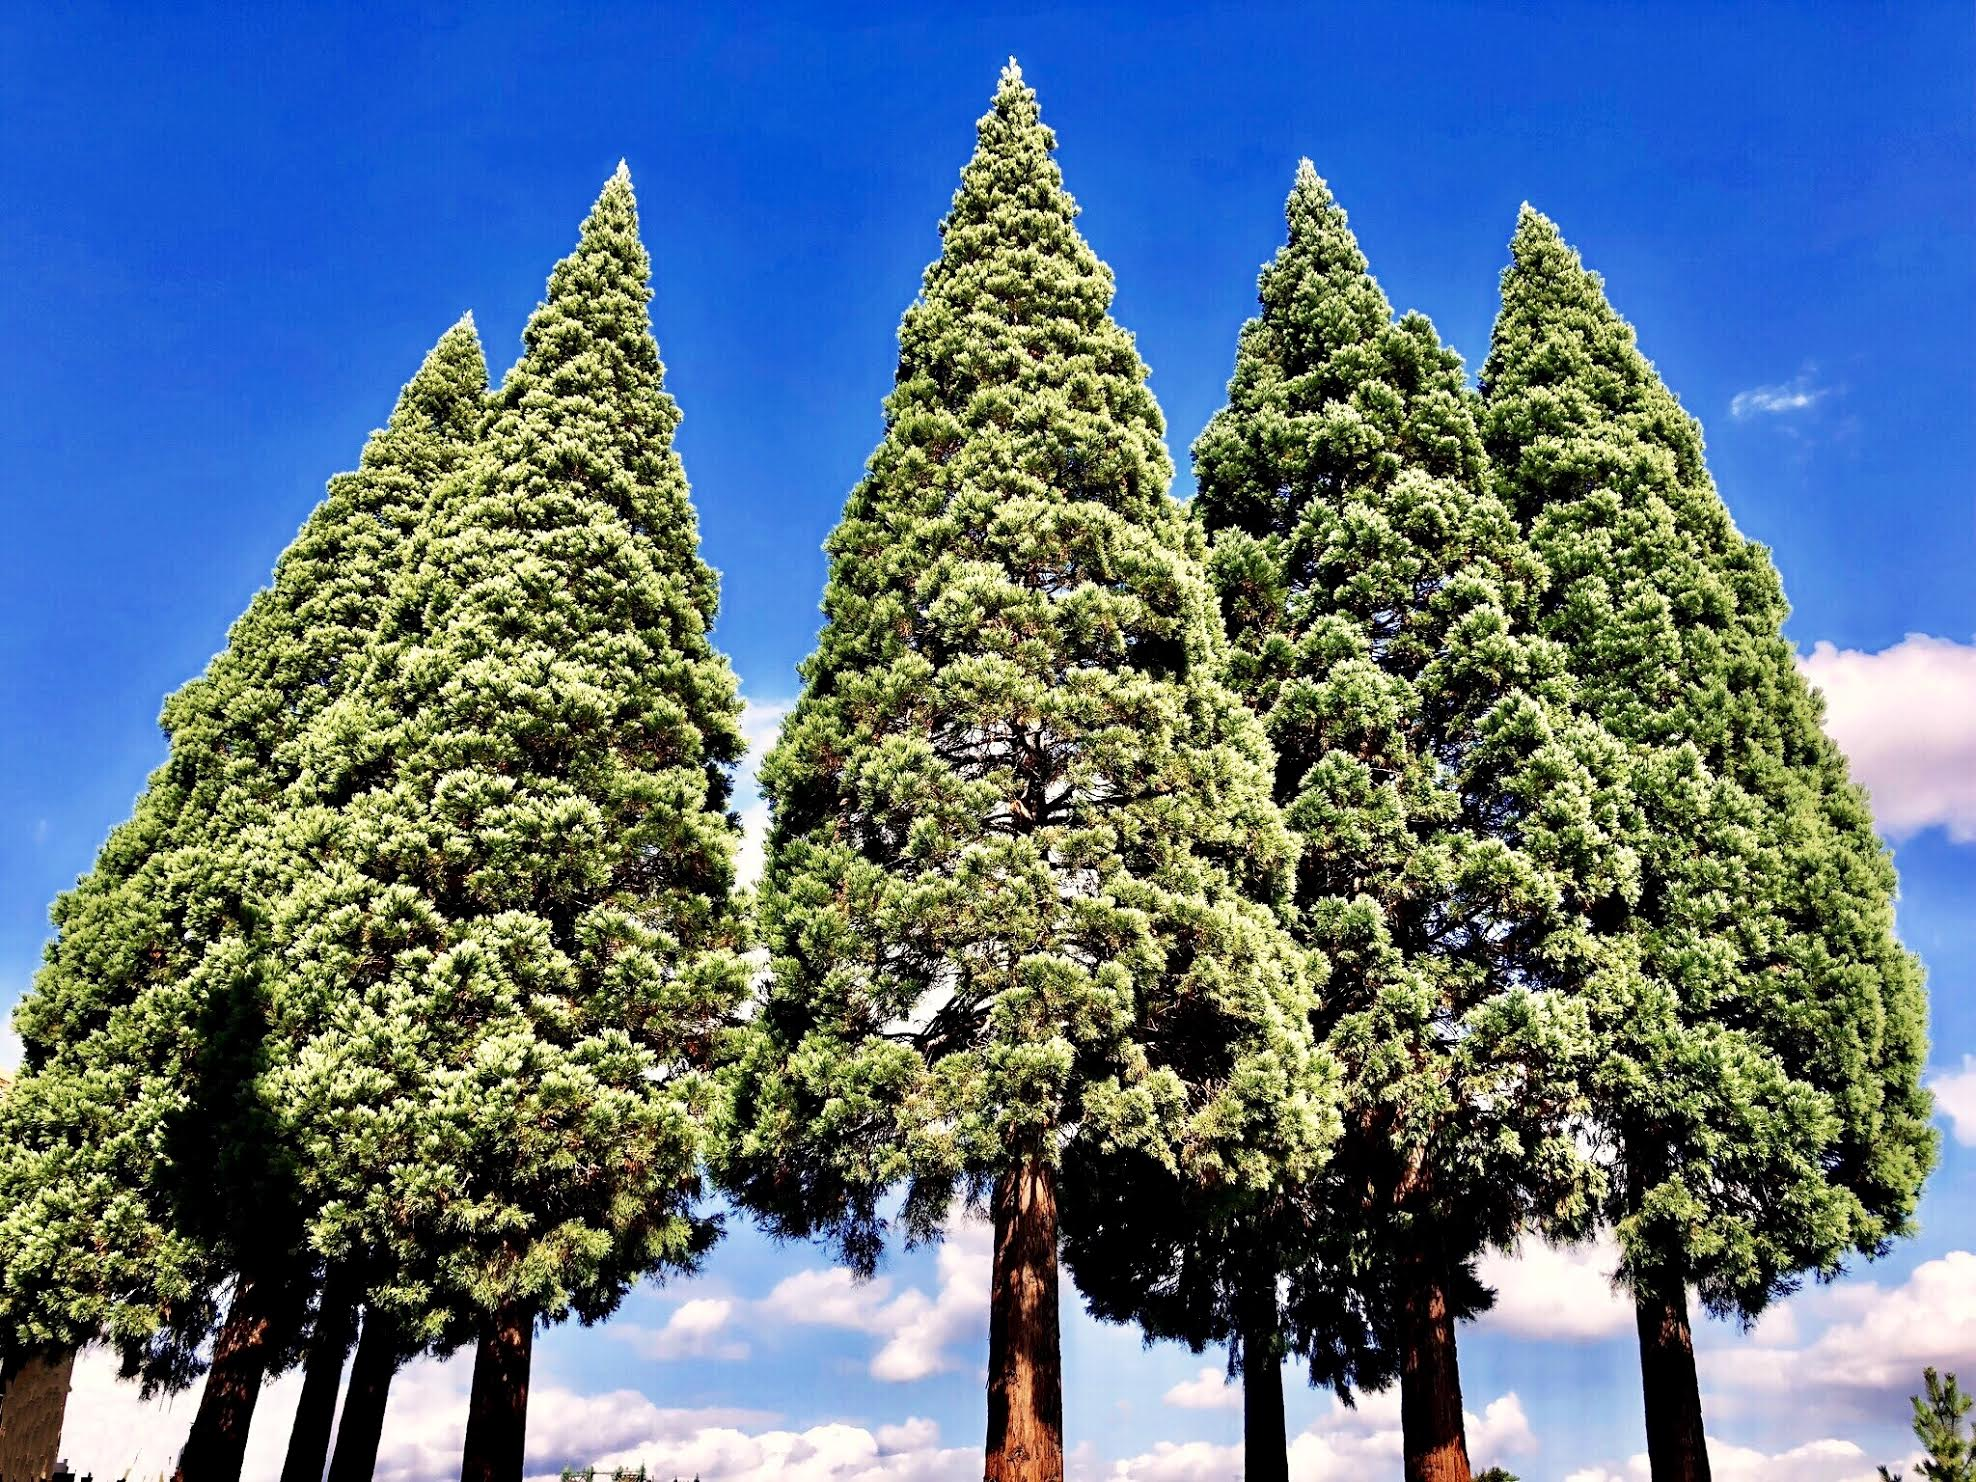 Several large conifer trees